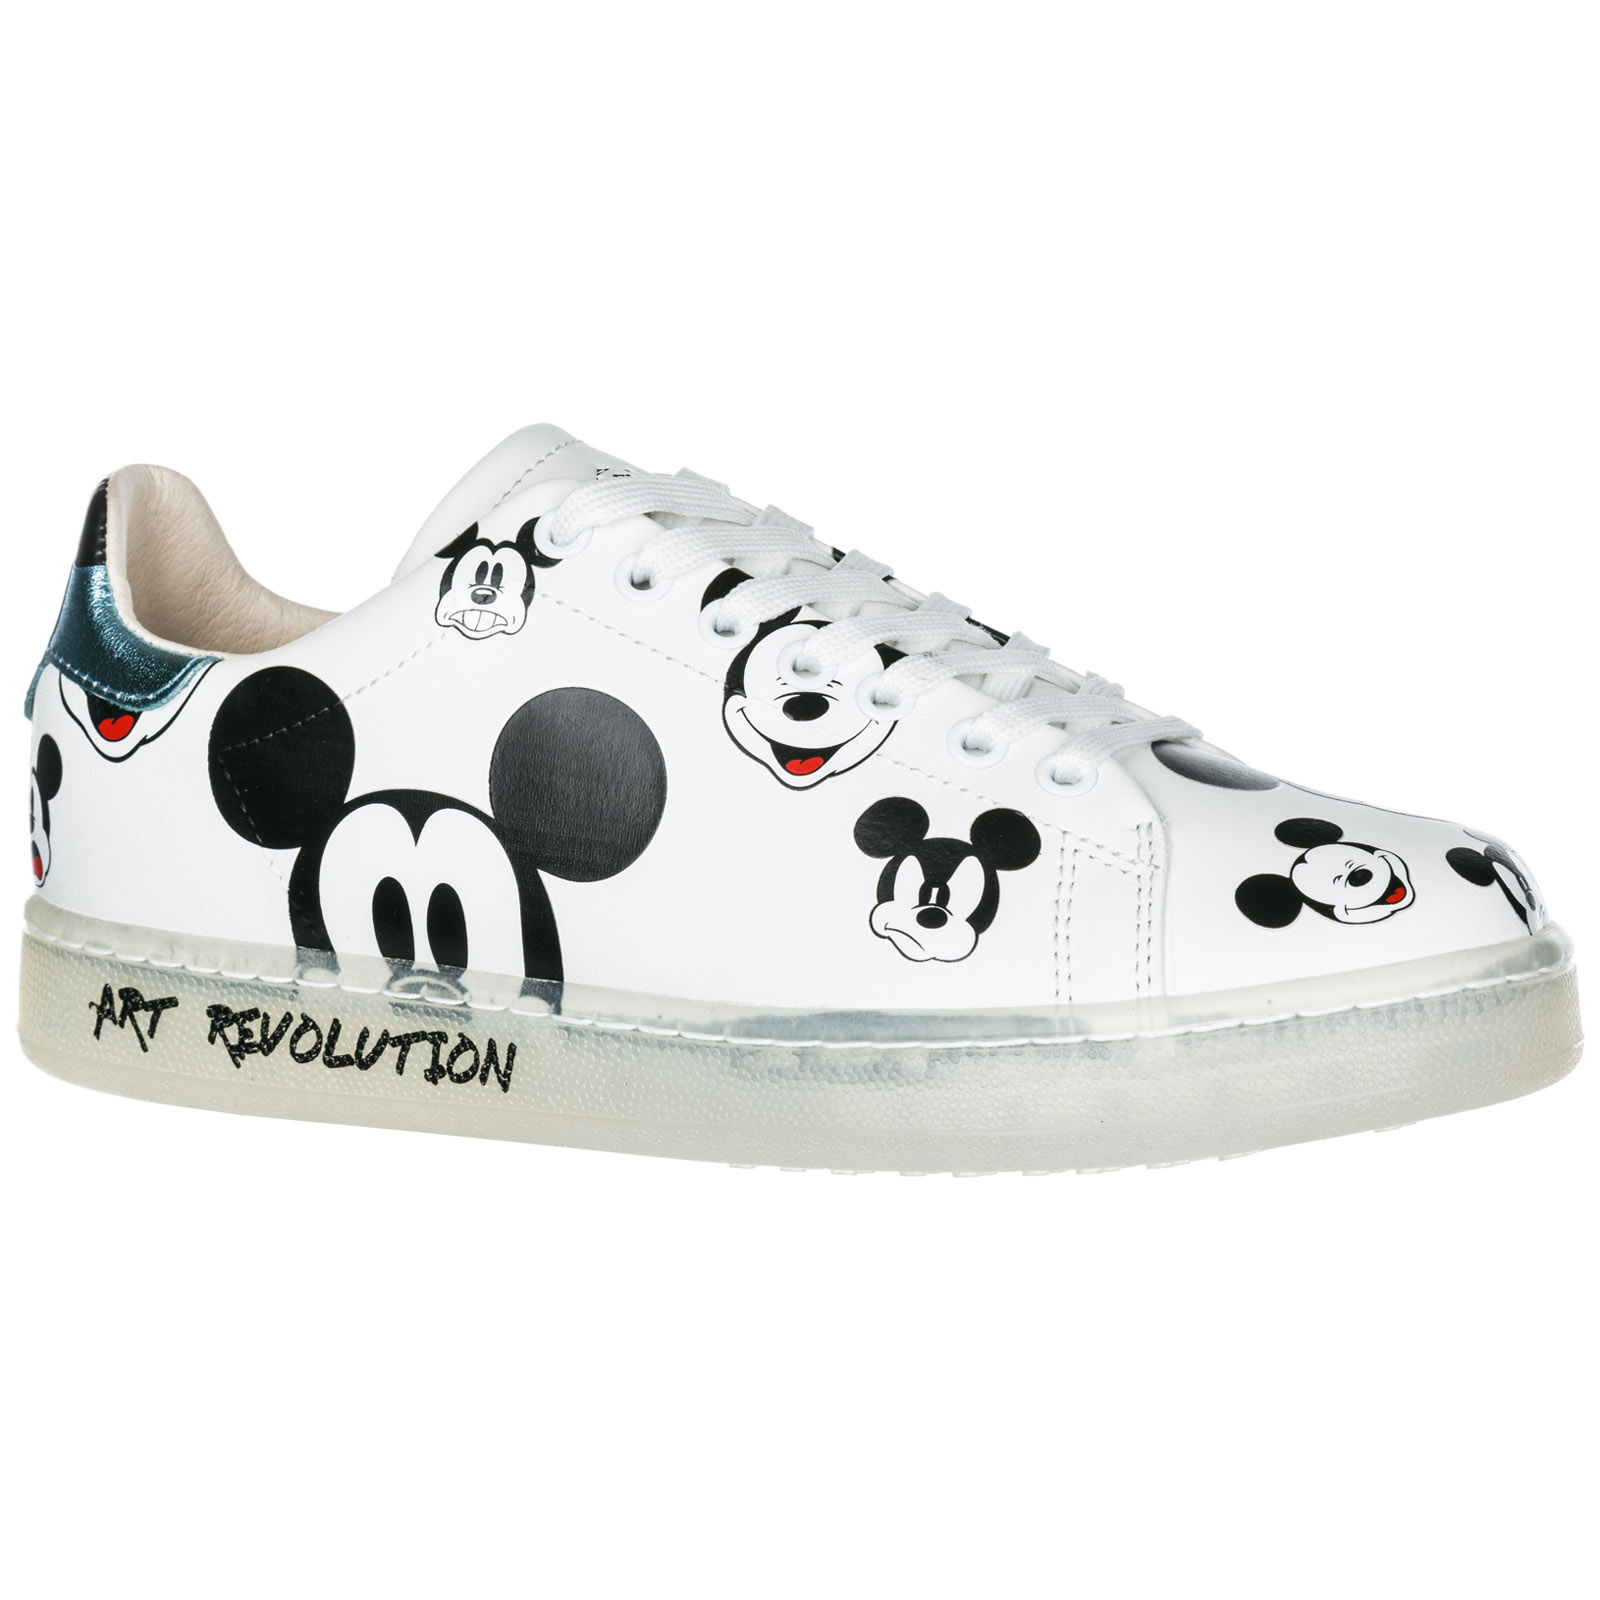 Sneakers Moa Master of Arts Disney Mickey Mouse MD313 white  4a6edb75056